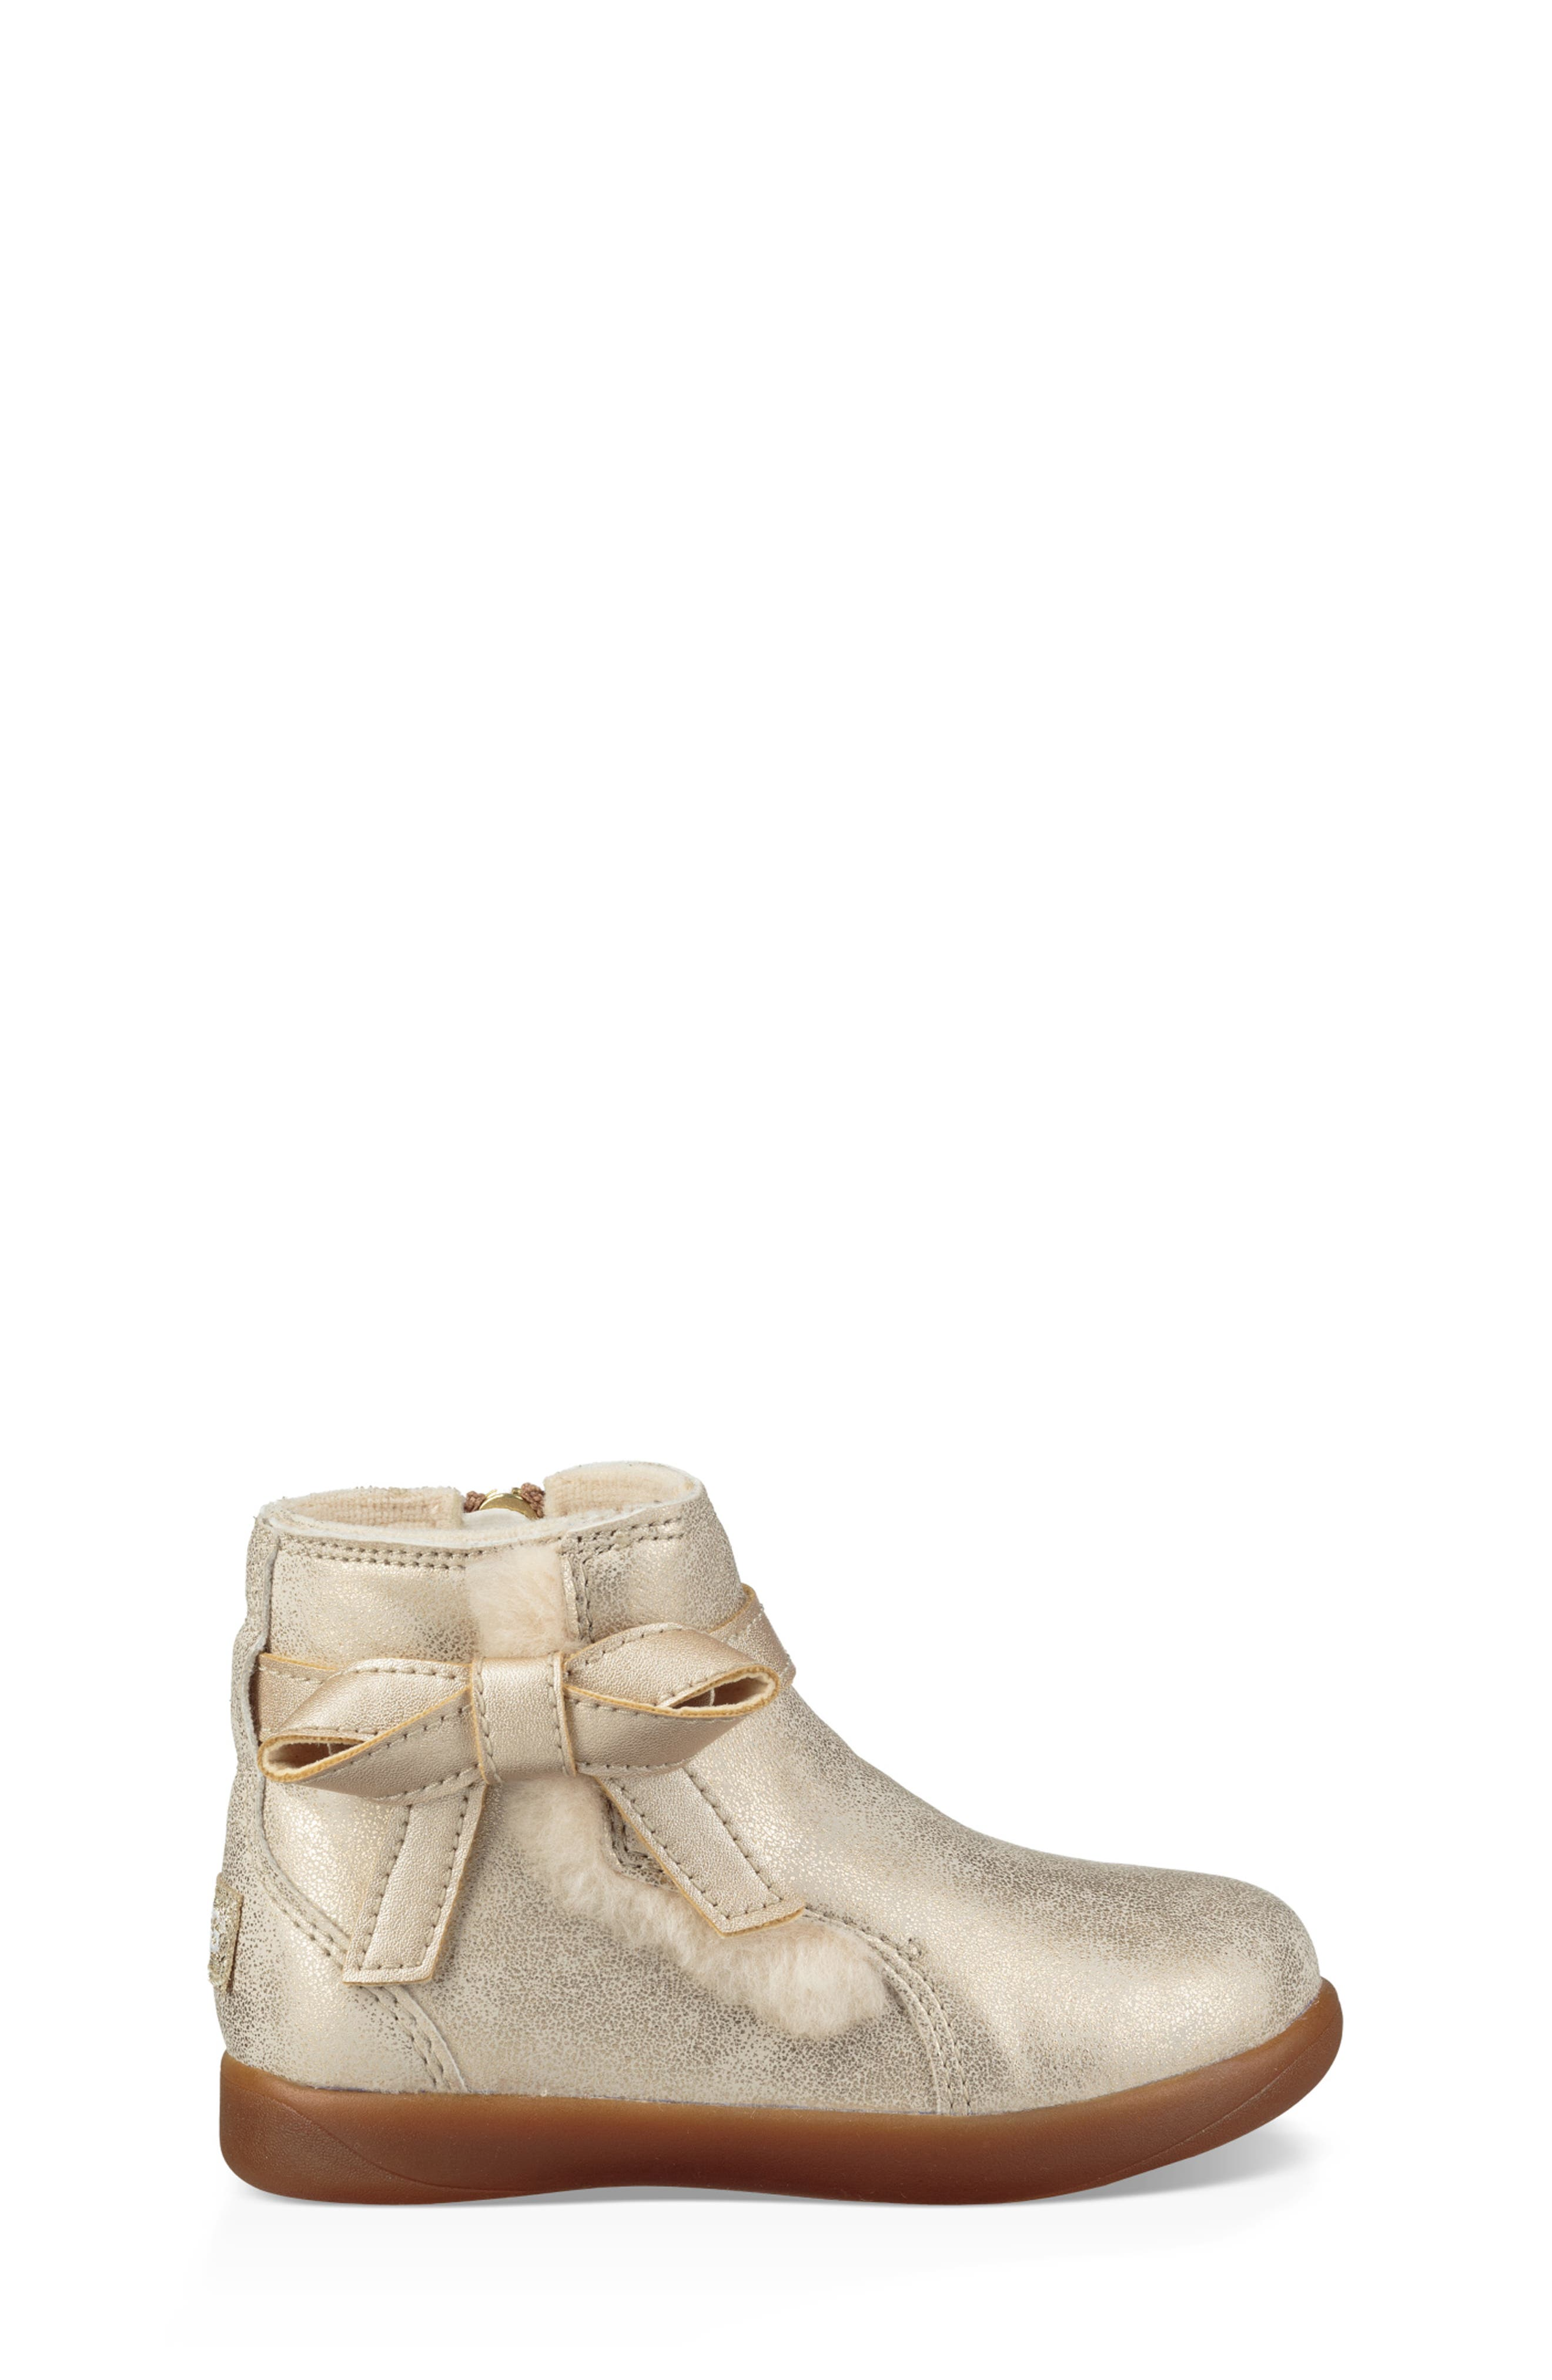 UGG<SUP>®</SUP>, Libbie Metallic Boot, Alternate thumbnail 3, color, GOLD